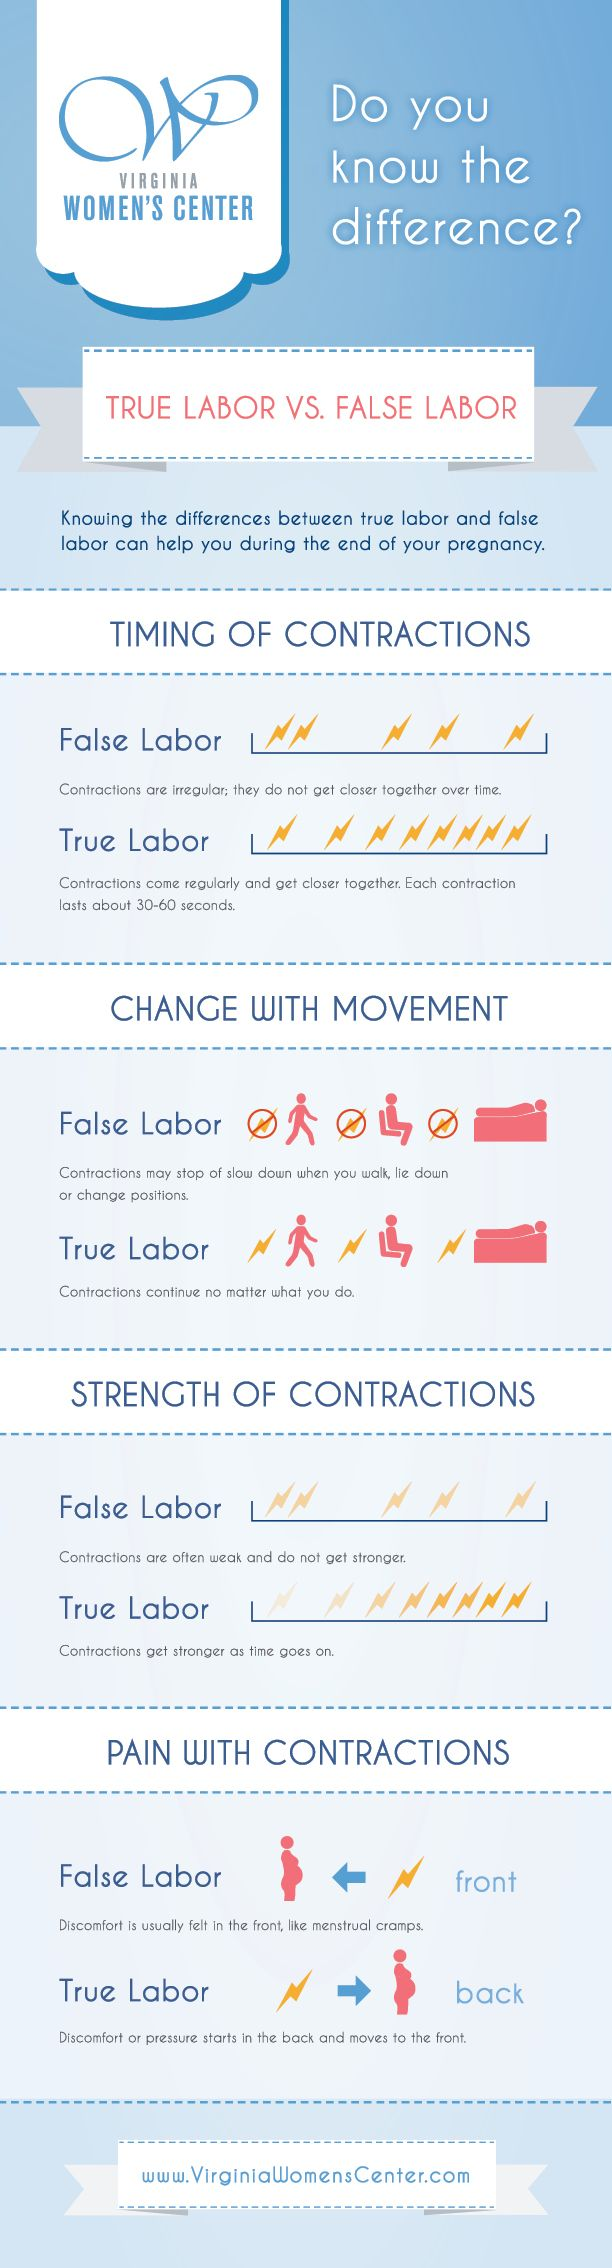 True Labor versus False Labor | Virginia Women's Center blog